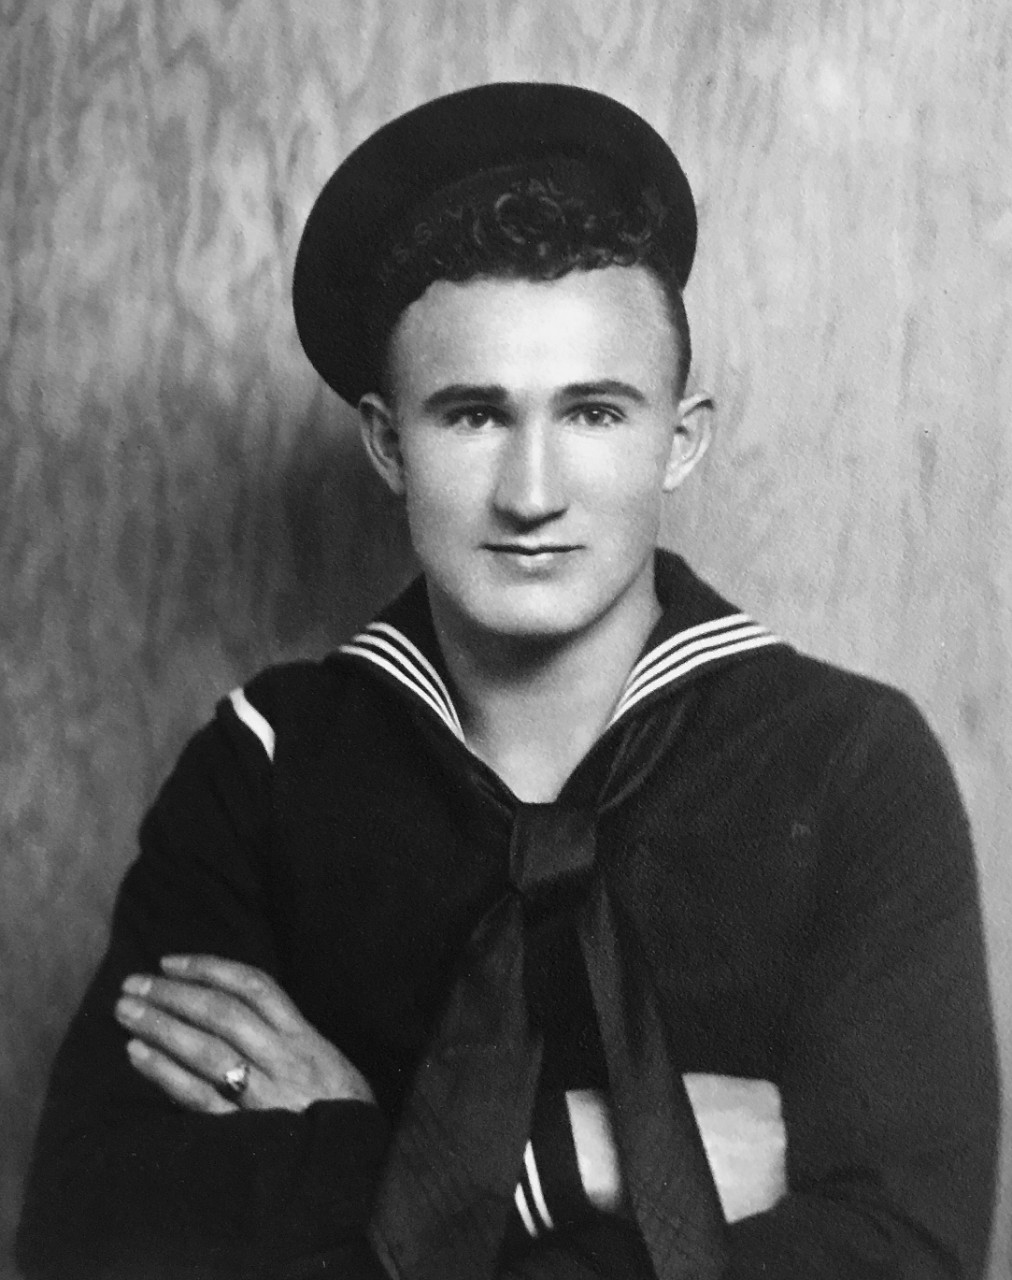 An undated photo of Chief Boatswain's Mate Joseph L. George from earlier in his career.  After enlisting in 1935, George was assigned to the repair ship USS Vestal which was moored alongside USS Arizona (BB 39) when the Japanese attack began on Dec. 7, 1941. (Photo Courtesy of George Family/Released)